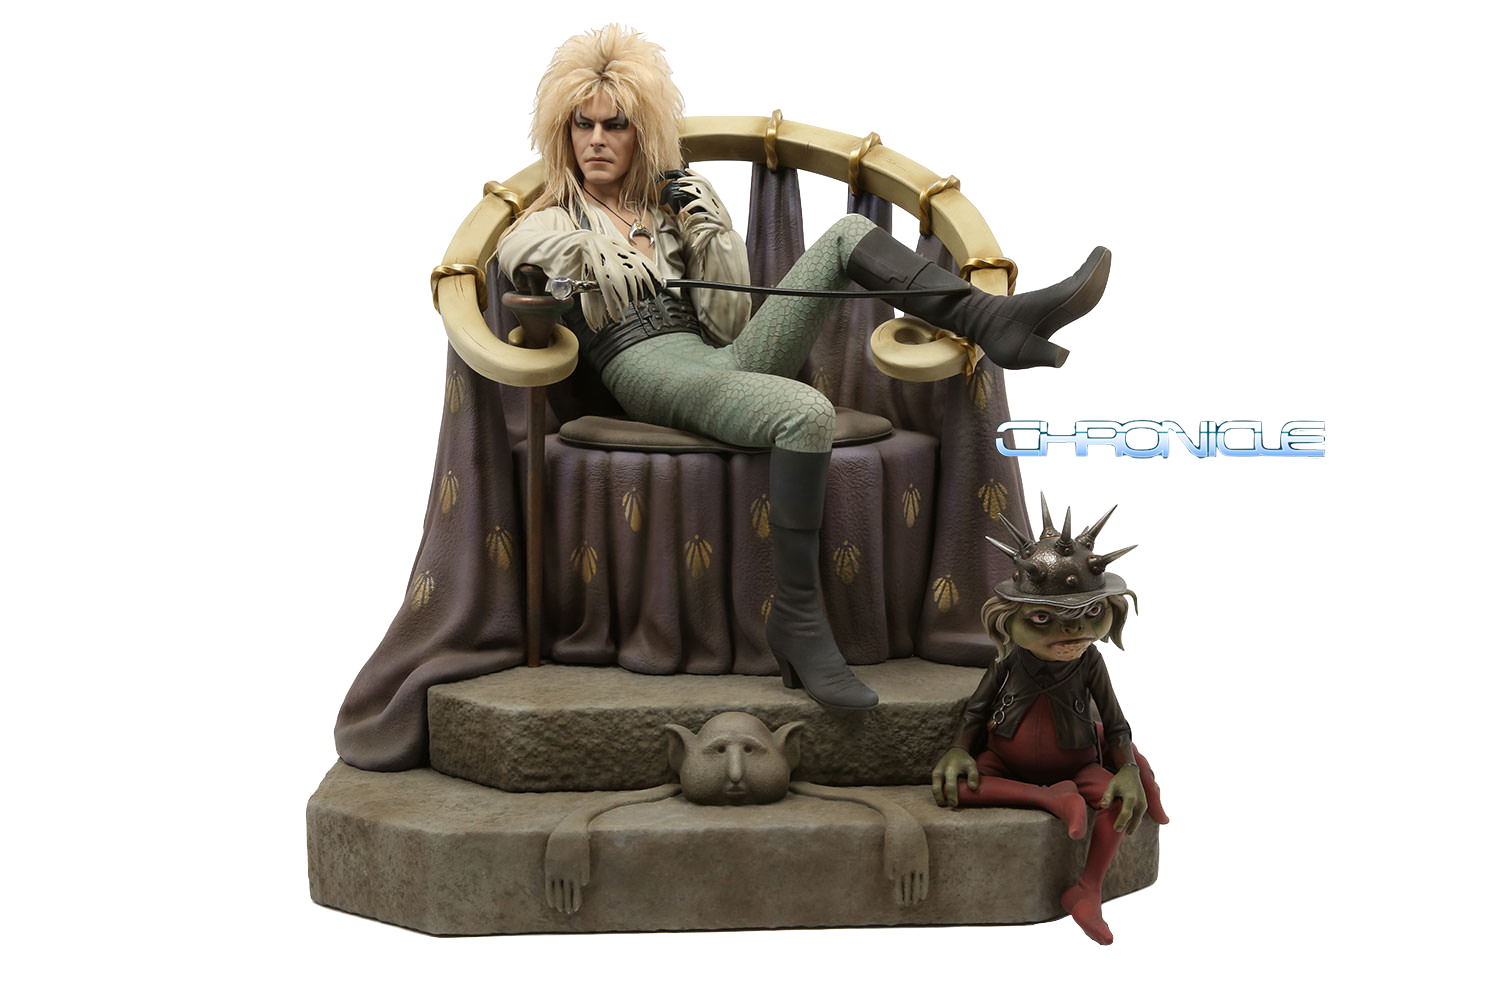 chronicle-collectibles-labyrinth-jareth-on-the-throne-statue-toyslife